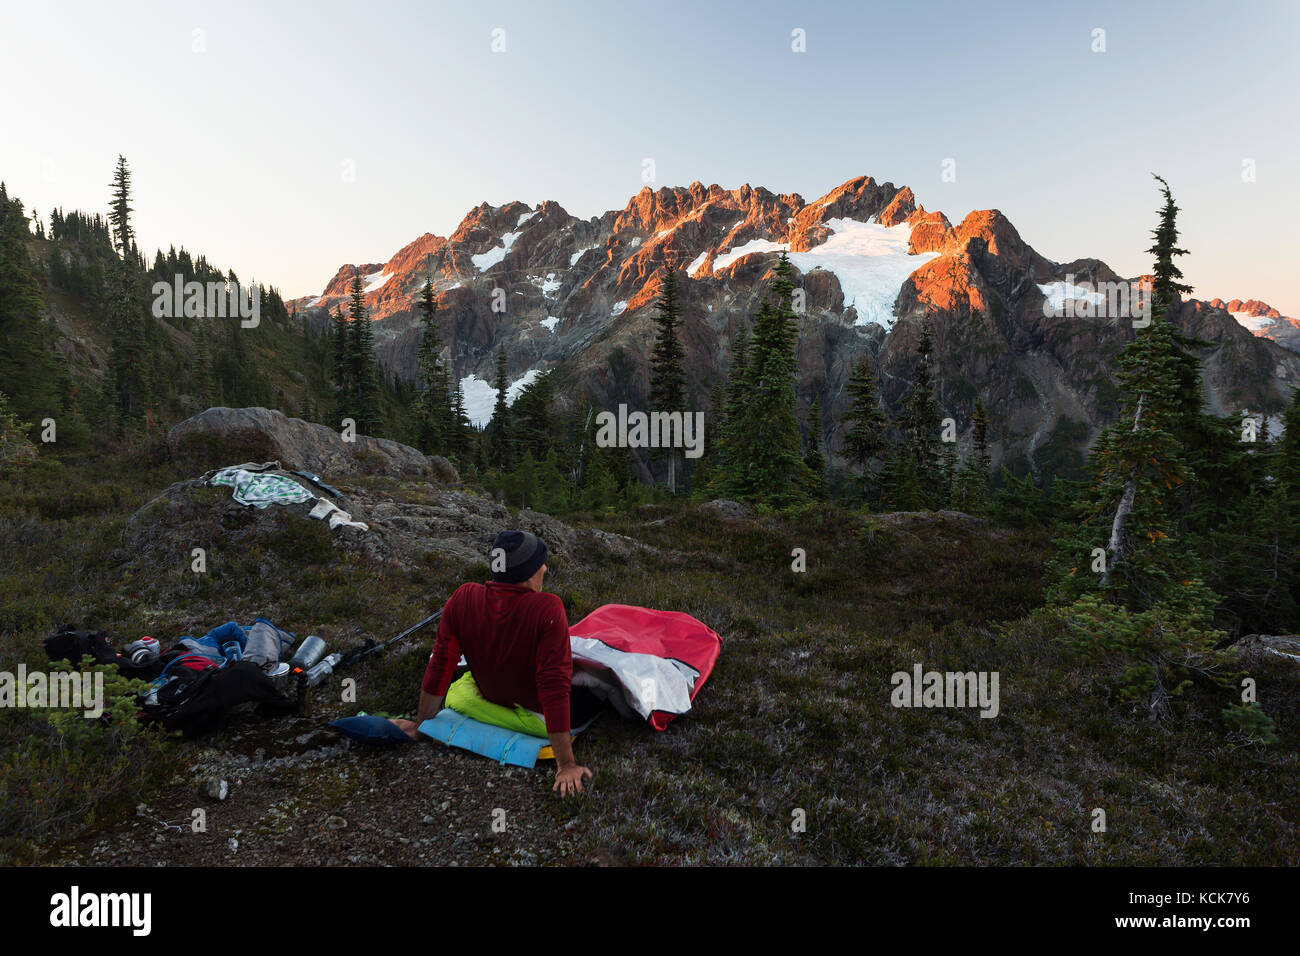 A lone hiker wakes up to early morning light scupting across the Septimus/Rousseau massif while hiking on the Flower - Stock Image